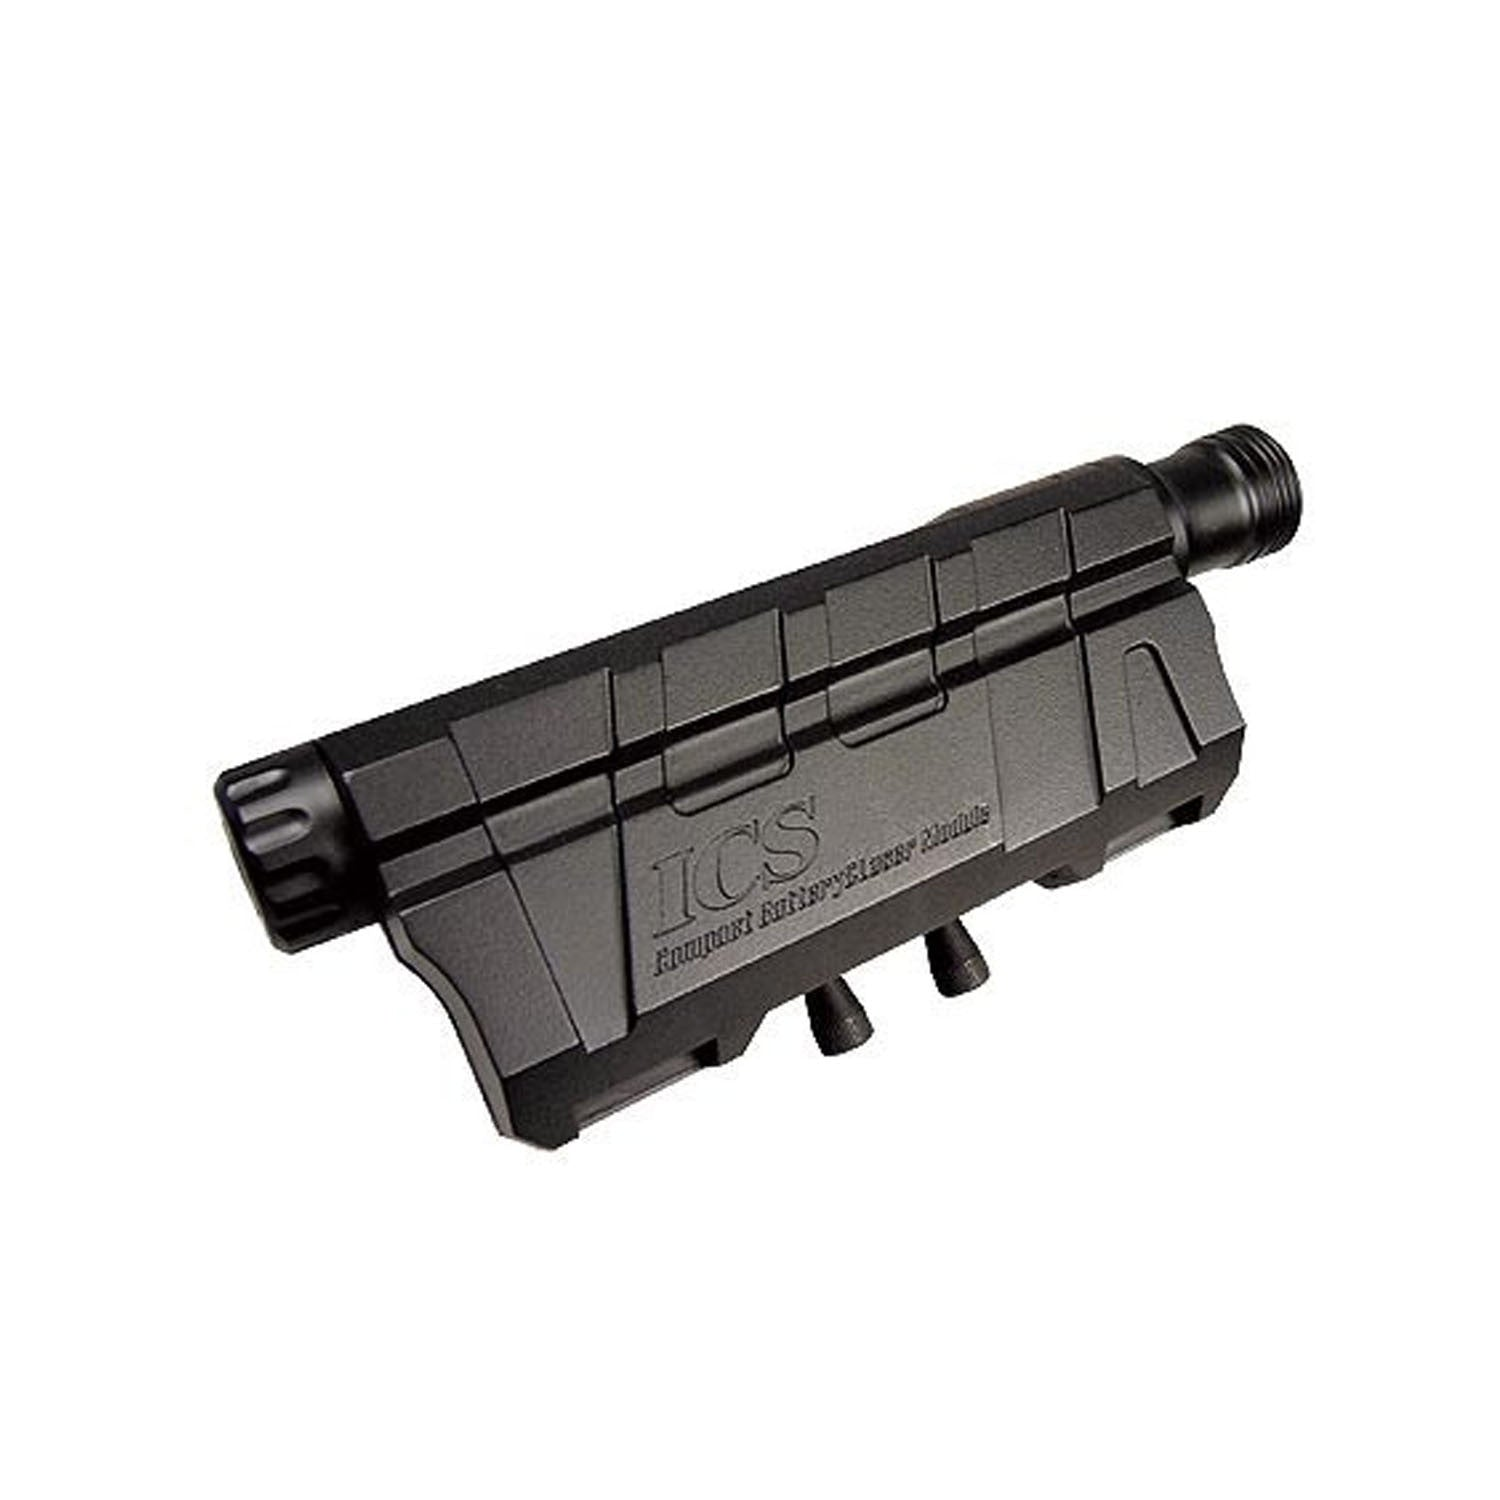 Battery Box For M4 CQB